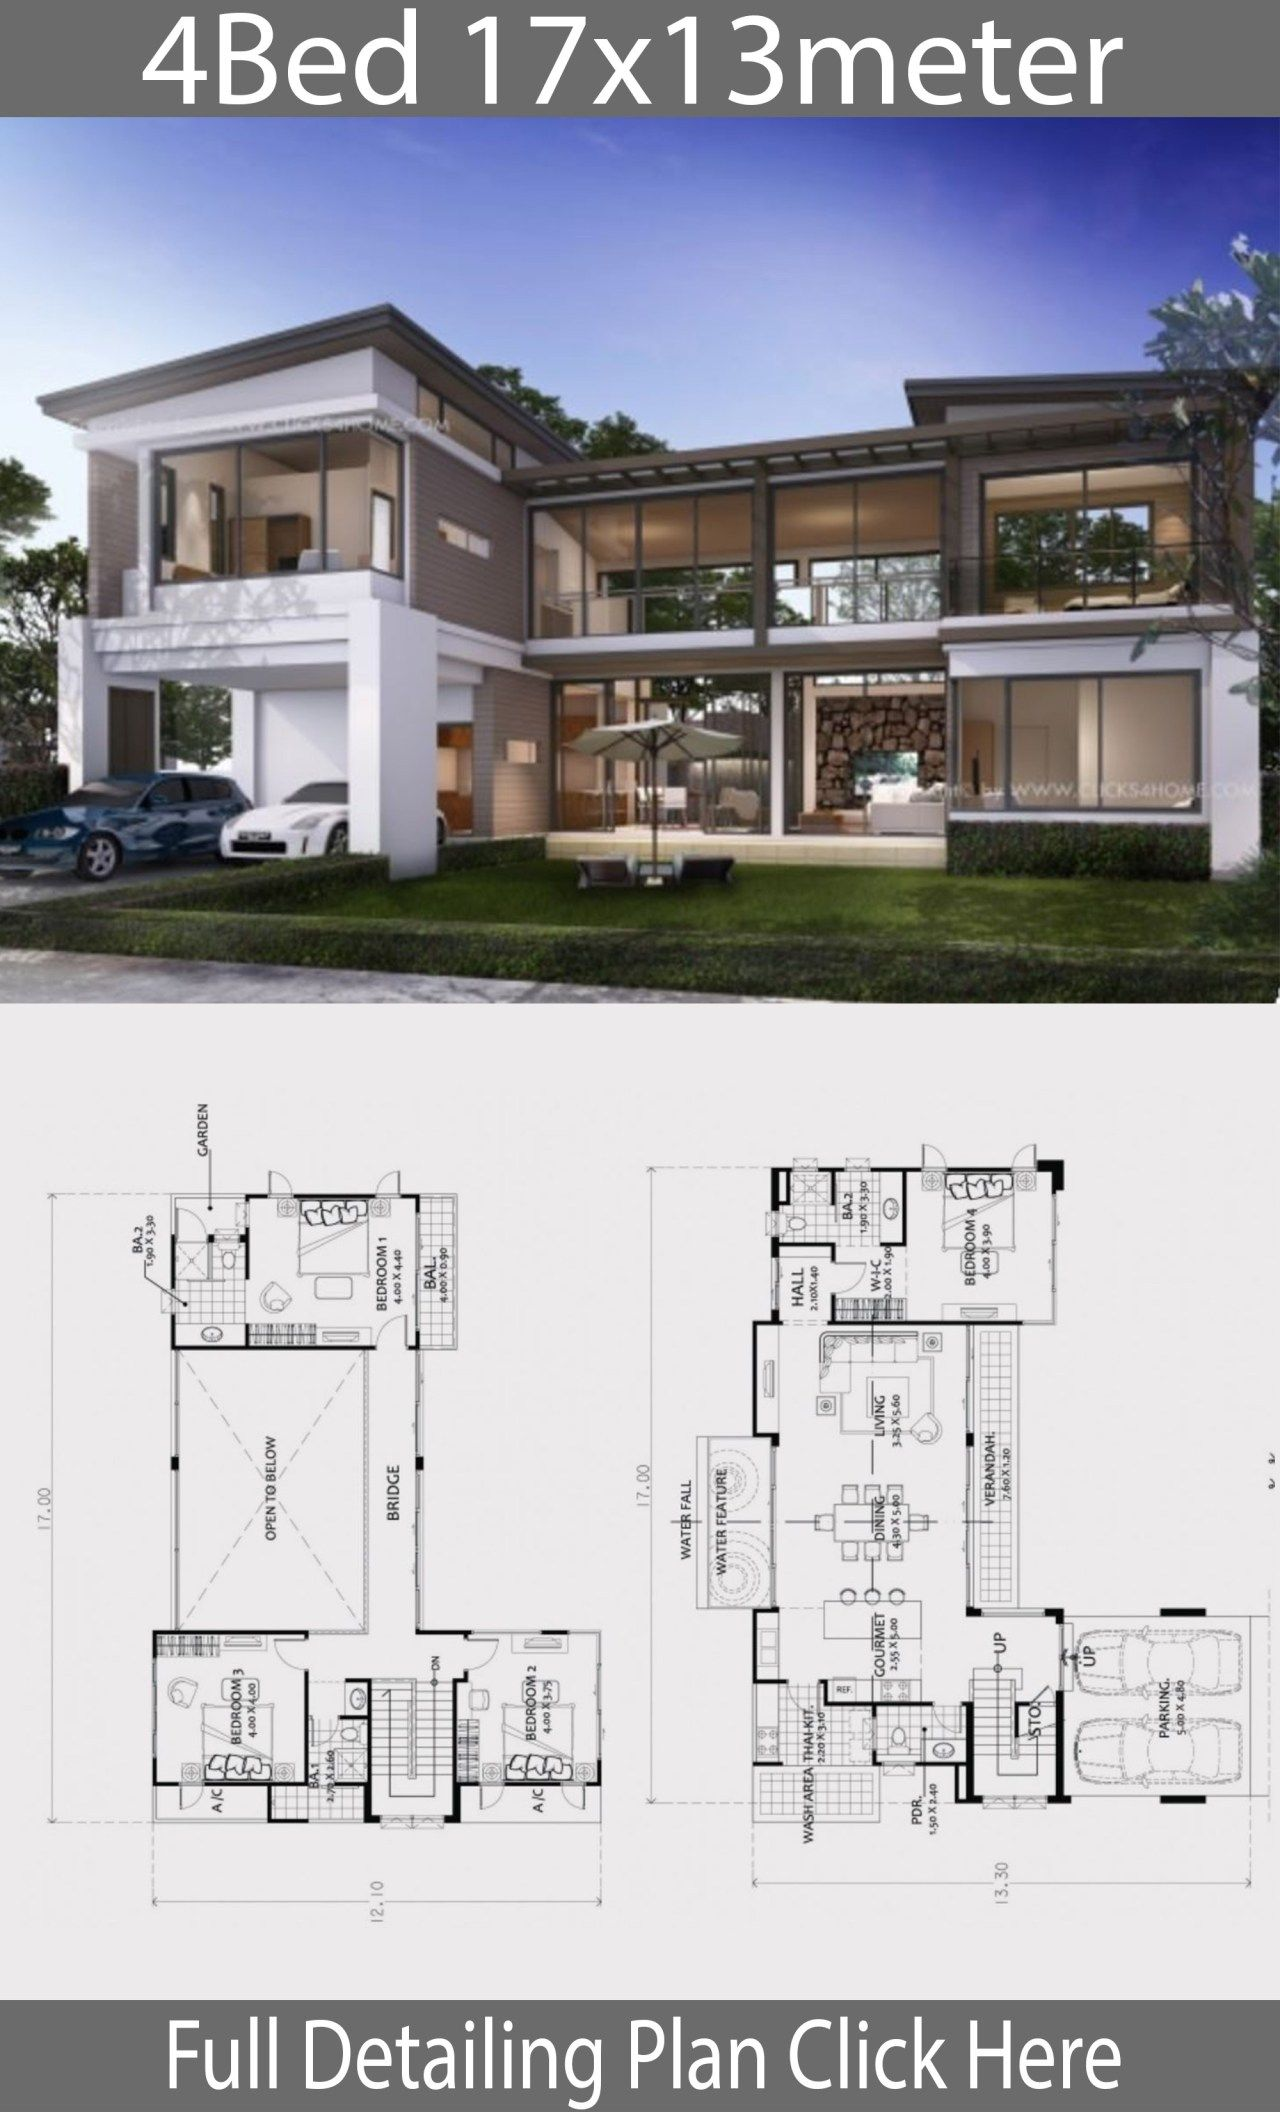 Home Design Plan 17x13m With 4 Bedrooms Home Ideas House Layouts Beautiful House Plans Contemporary House Plans